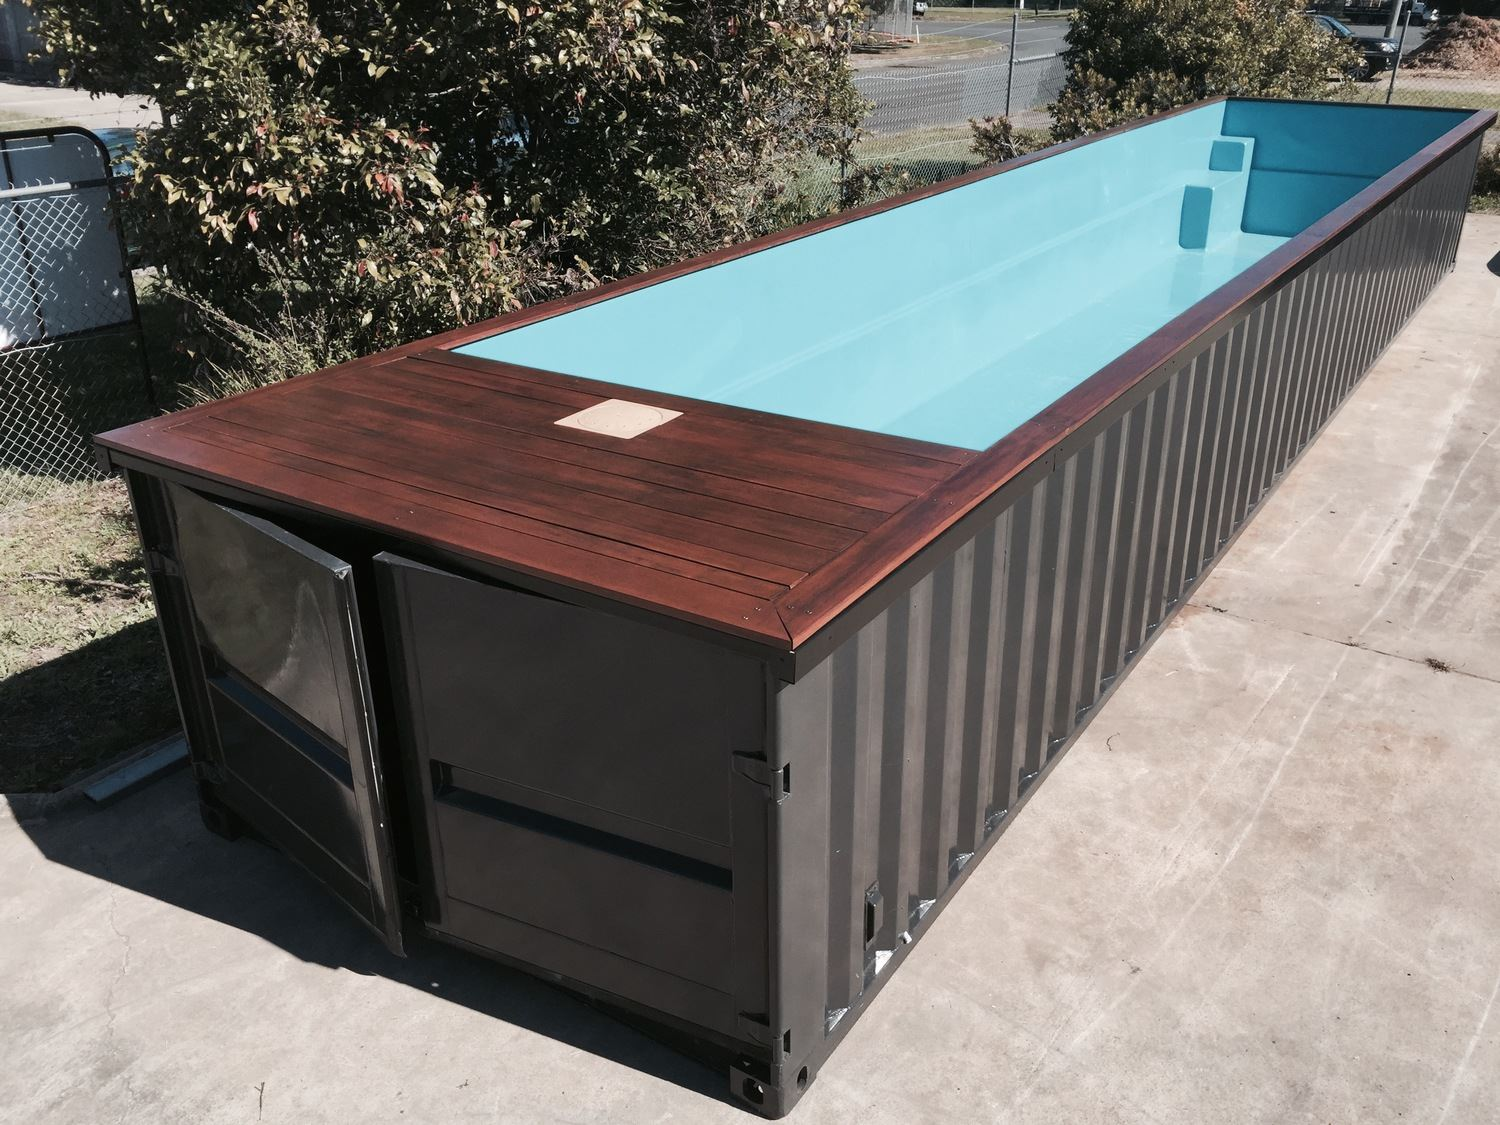 Ouvrons le champ des possibles containers piscine for Piscine orsole